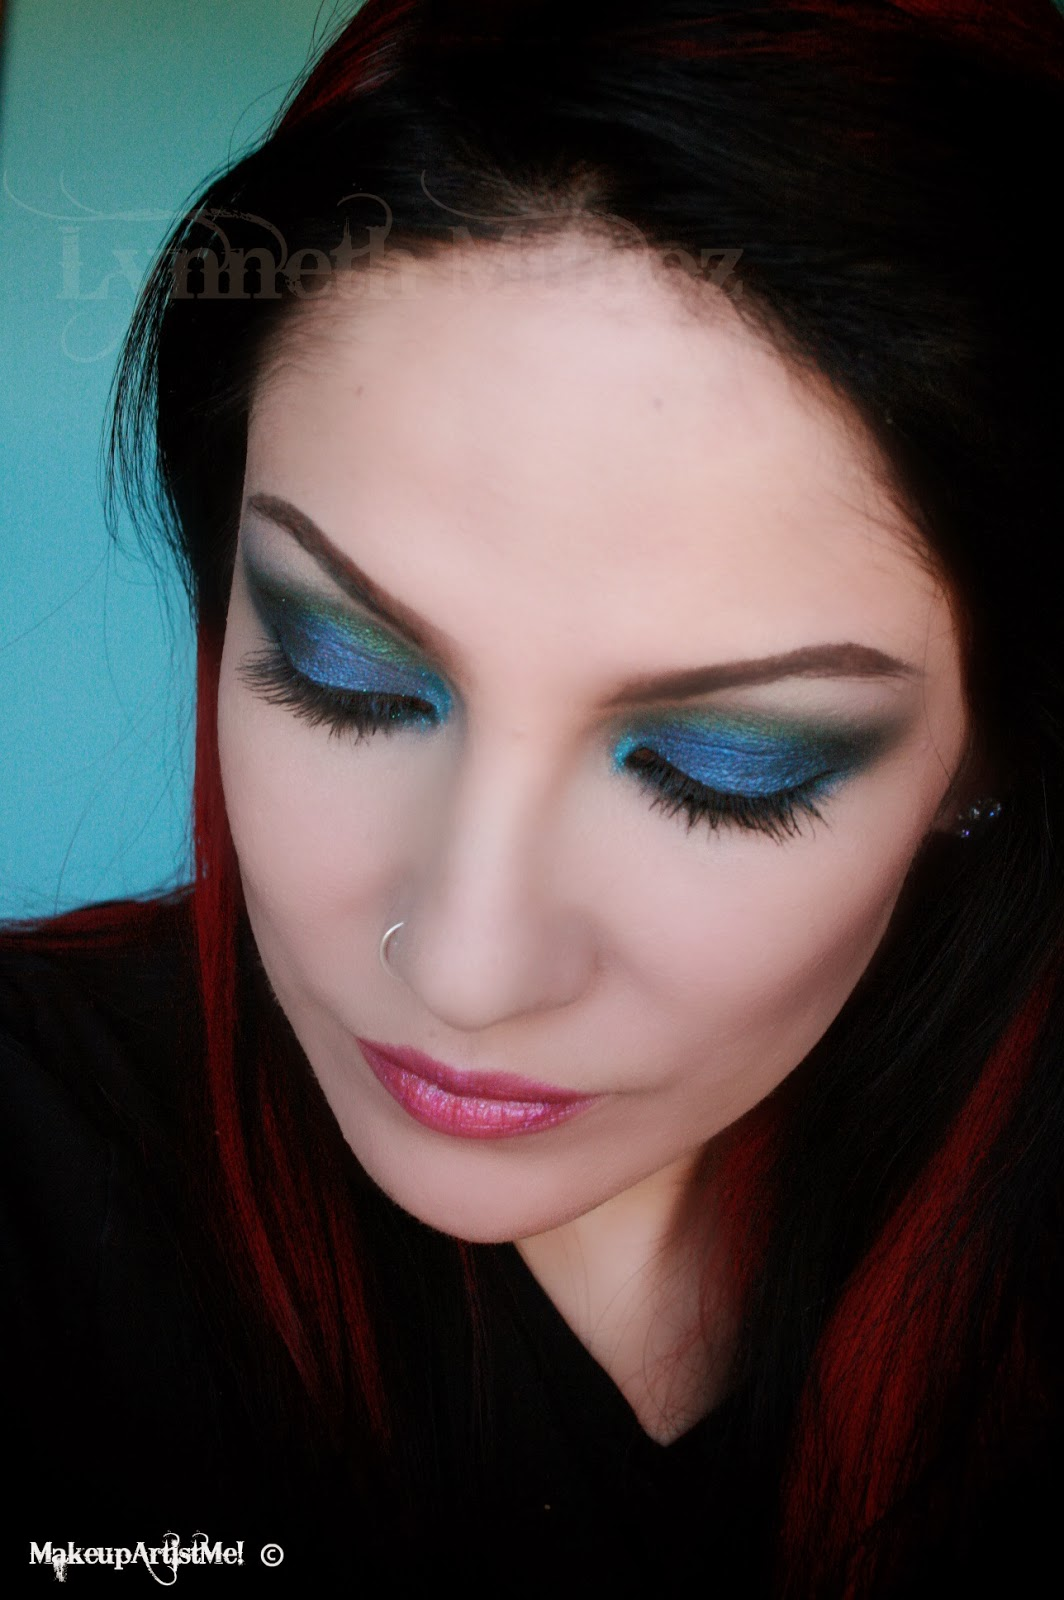 Make Up Application: Make-up Artist Me!: Peacock Stare